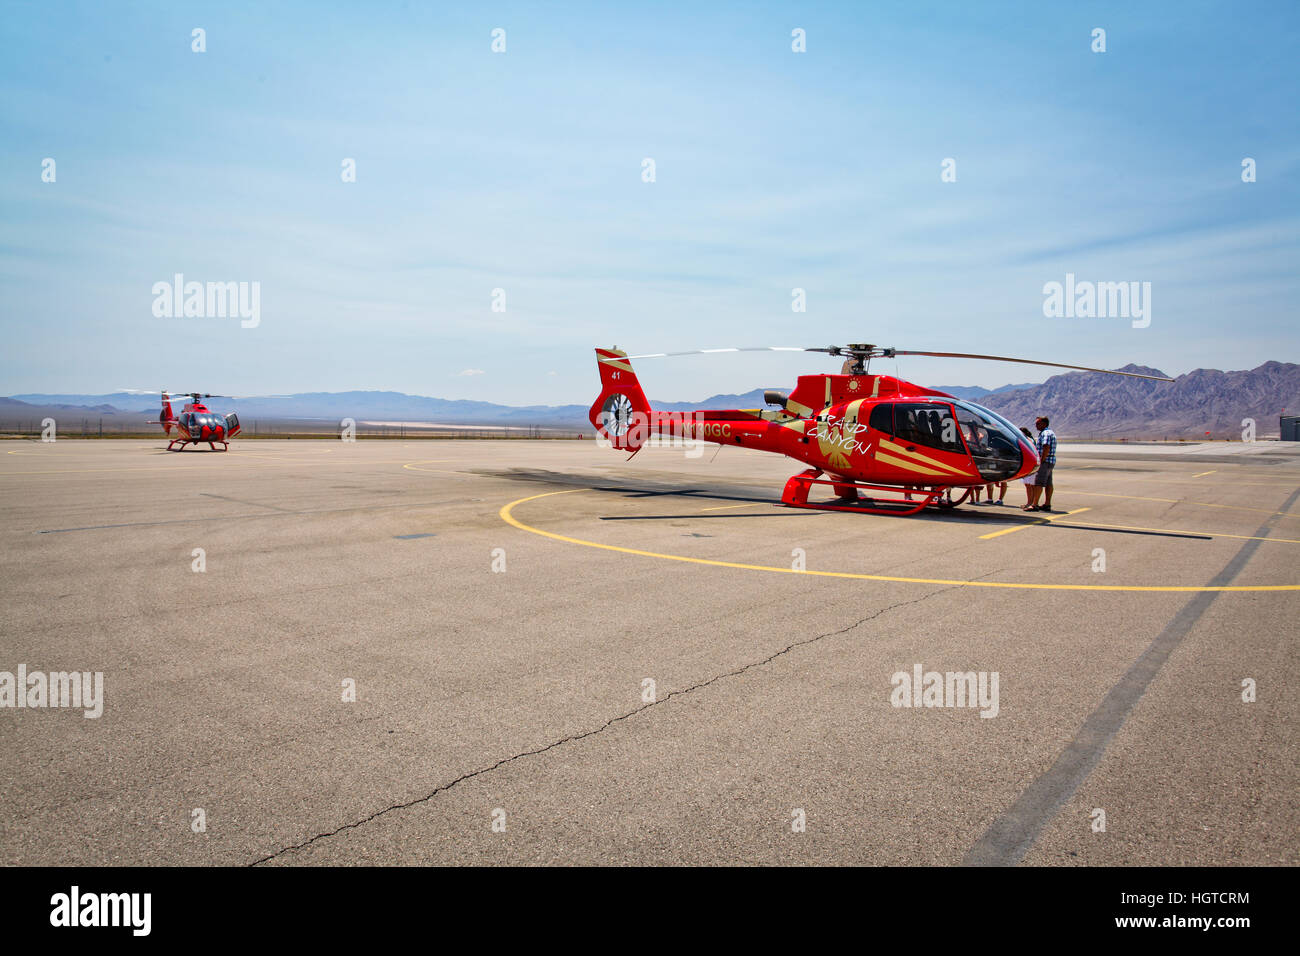 Grand Canyon Helicopter - Stock Image